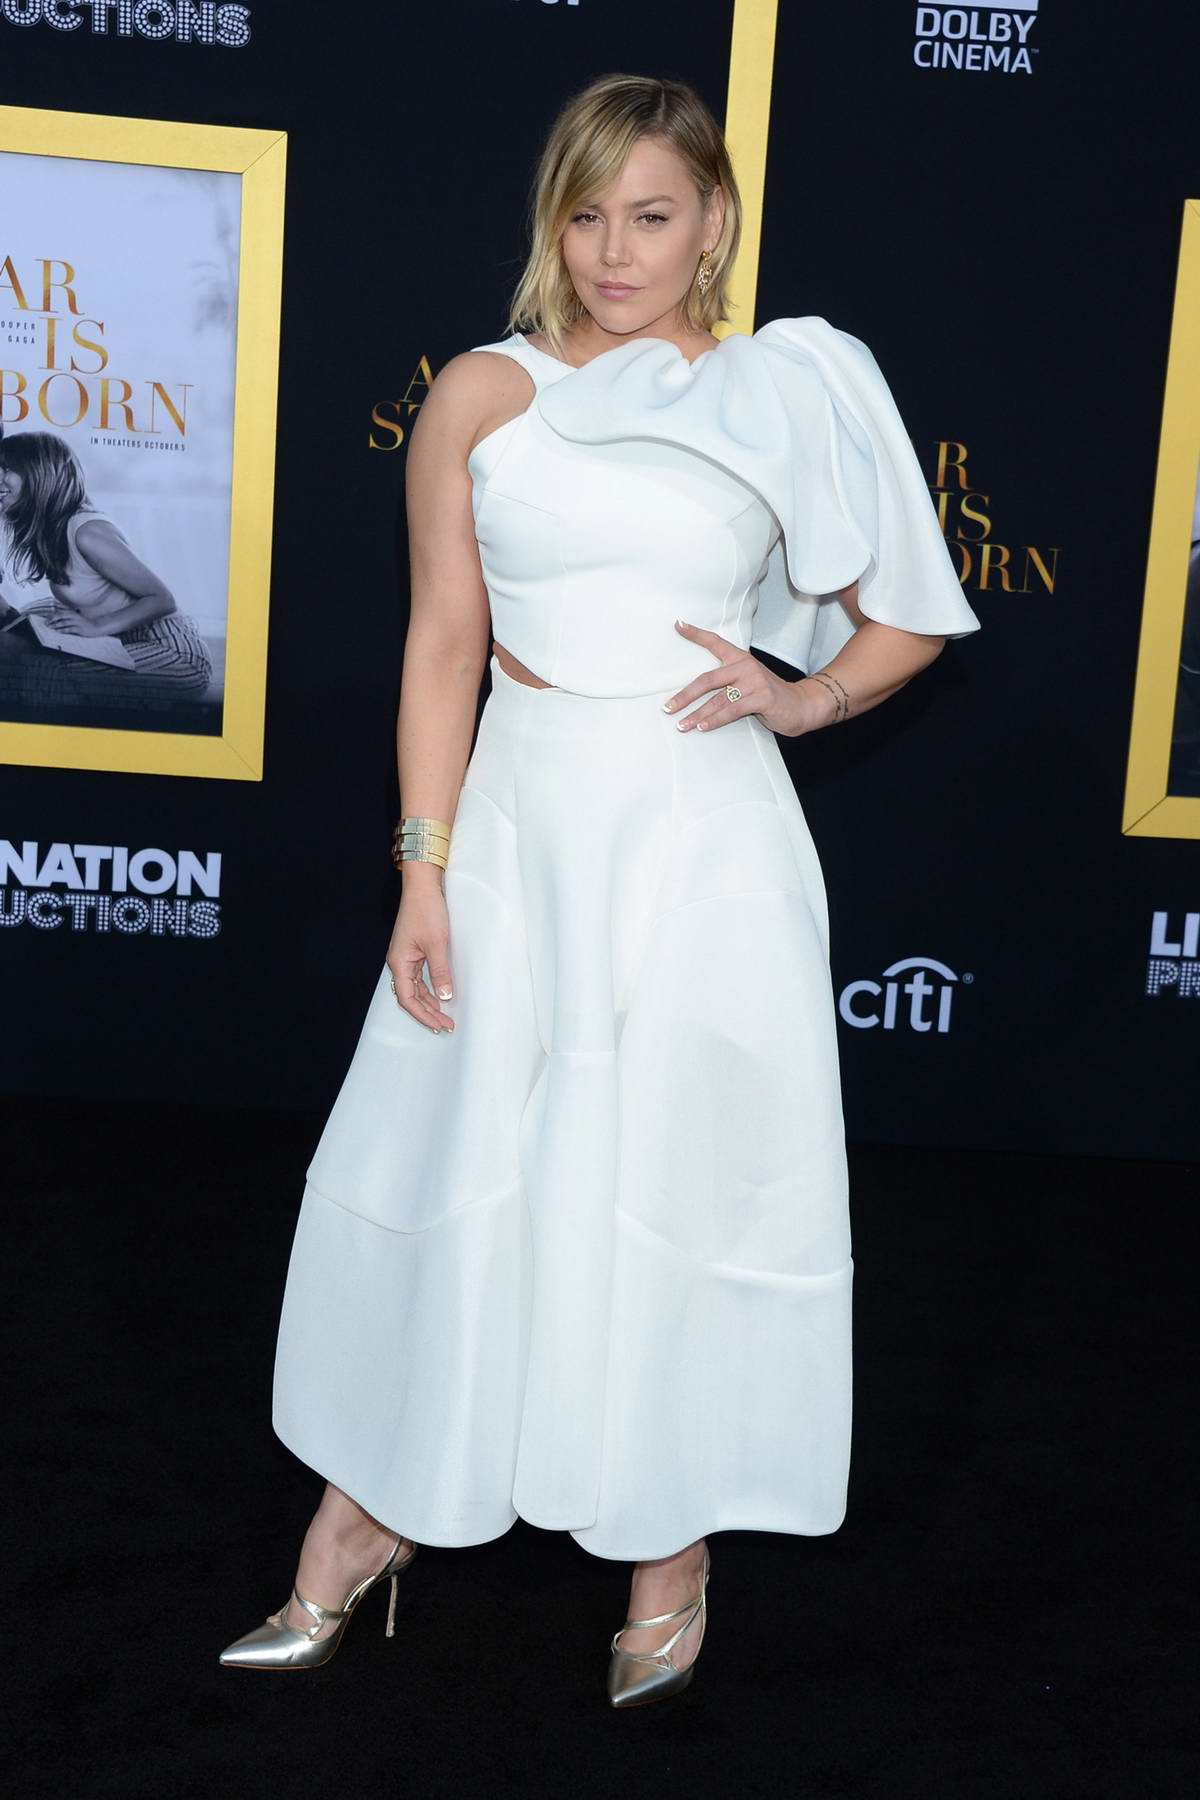 Abbie Cornish attends 'A Star Is Born' film premiere at Shrine Auditorium in Los Angeles